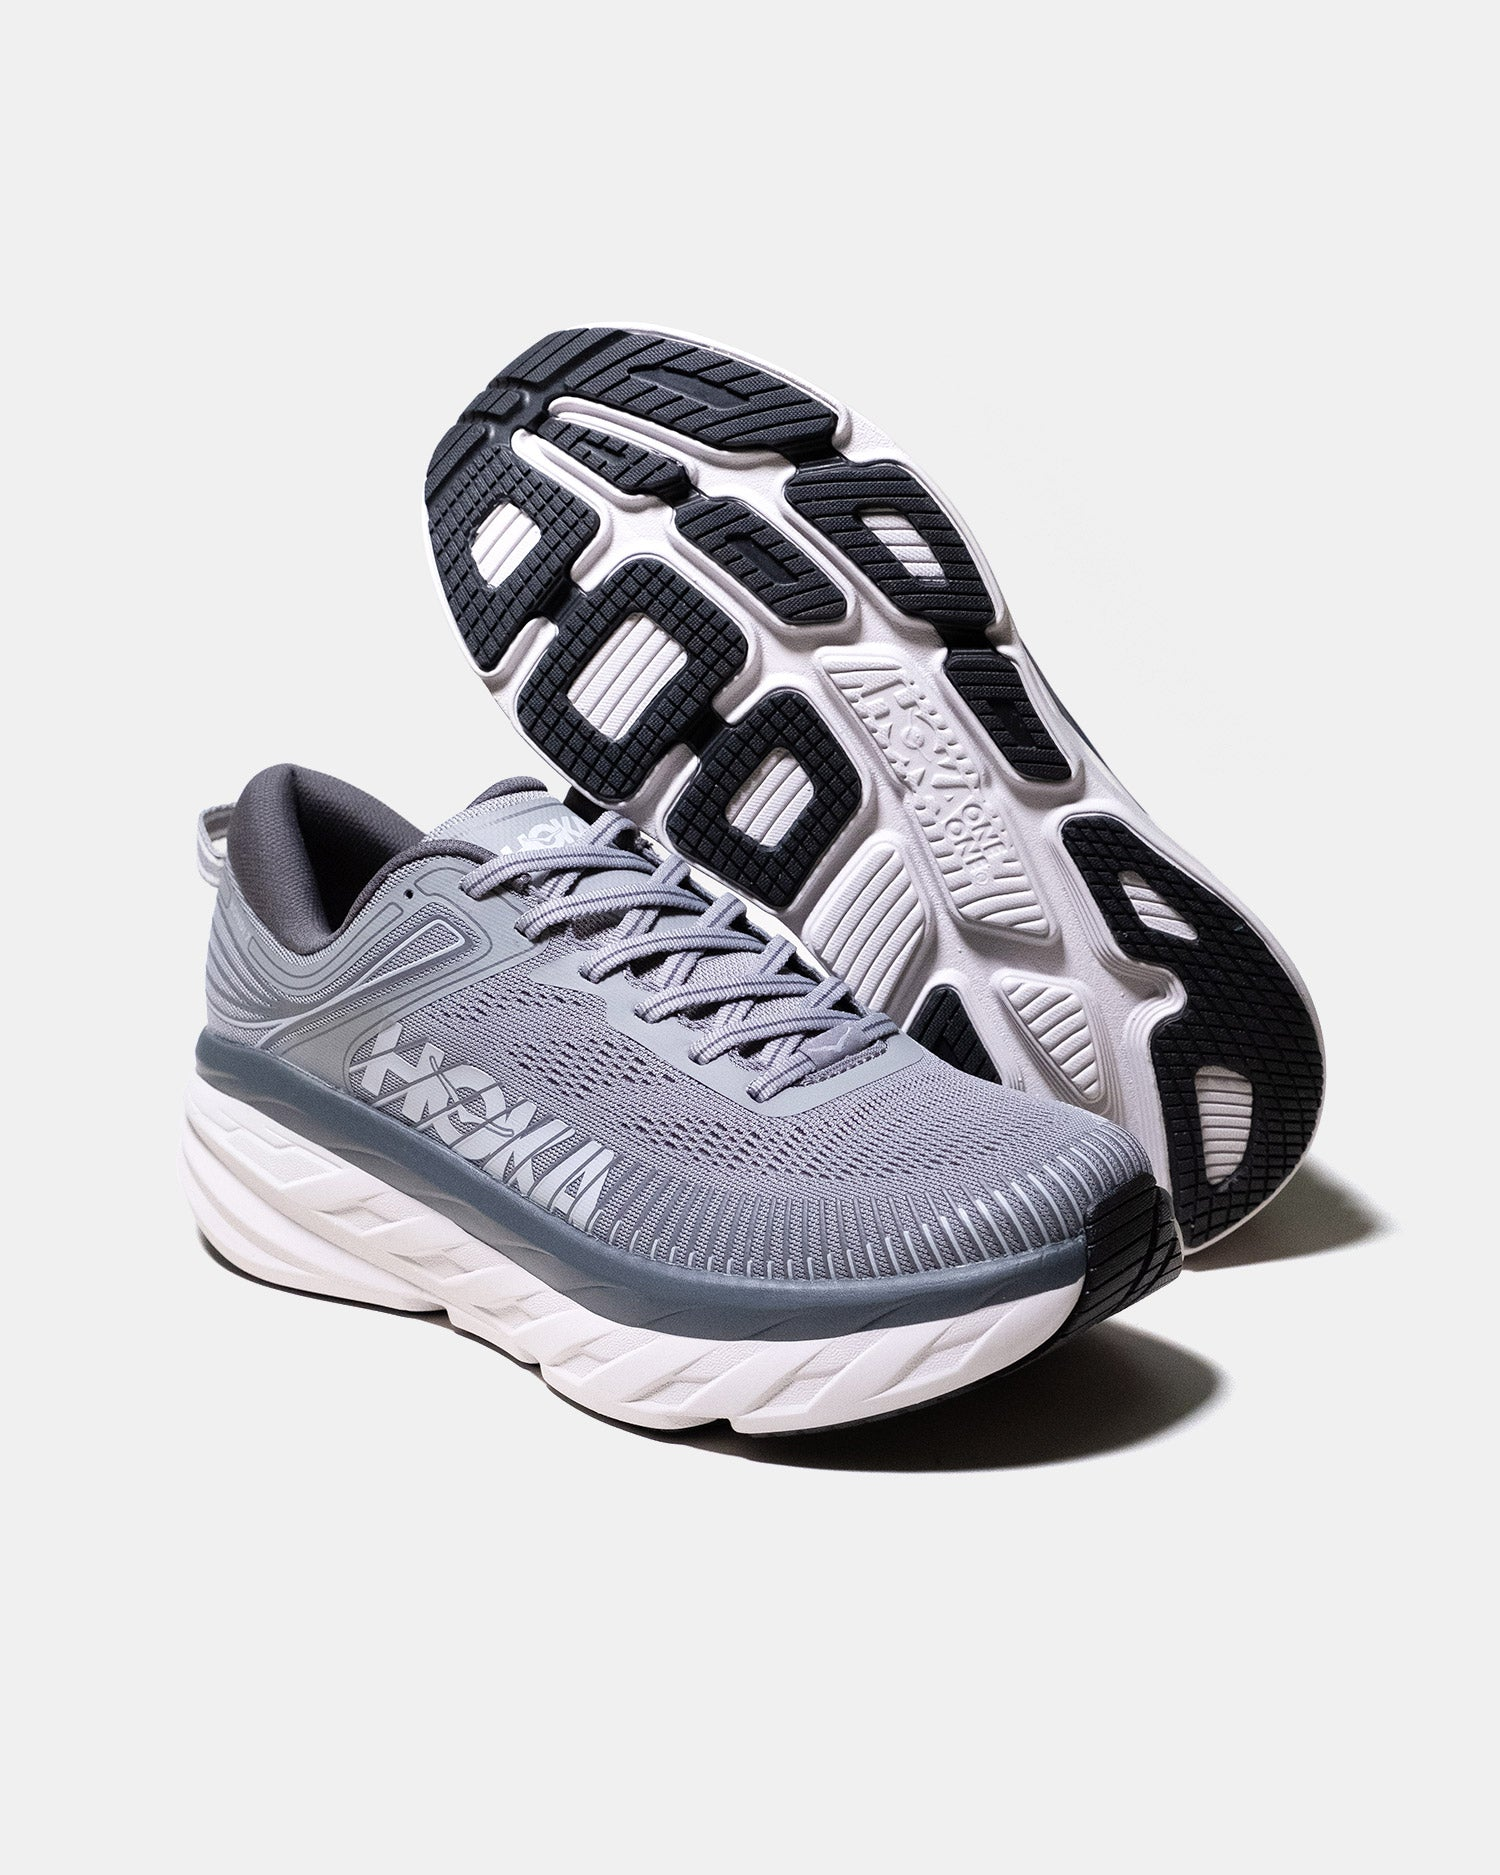 HOKA ONE ONE Bondi 7 Grey